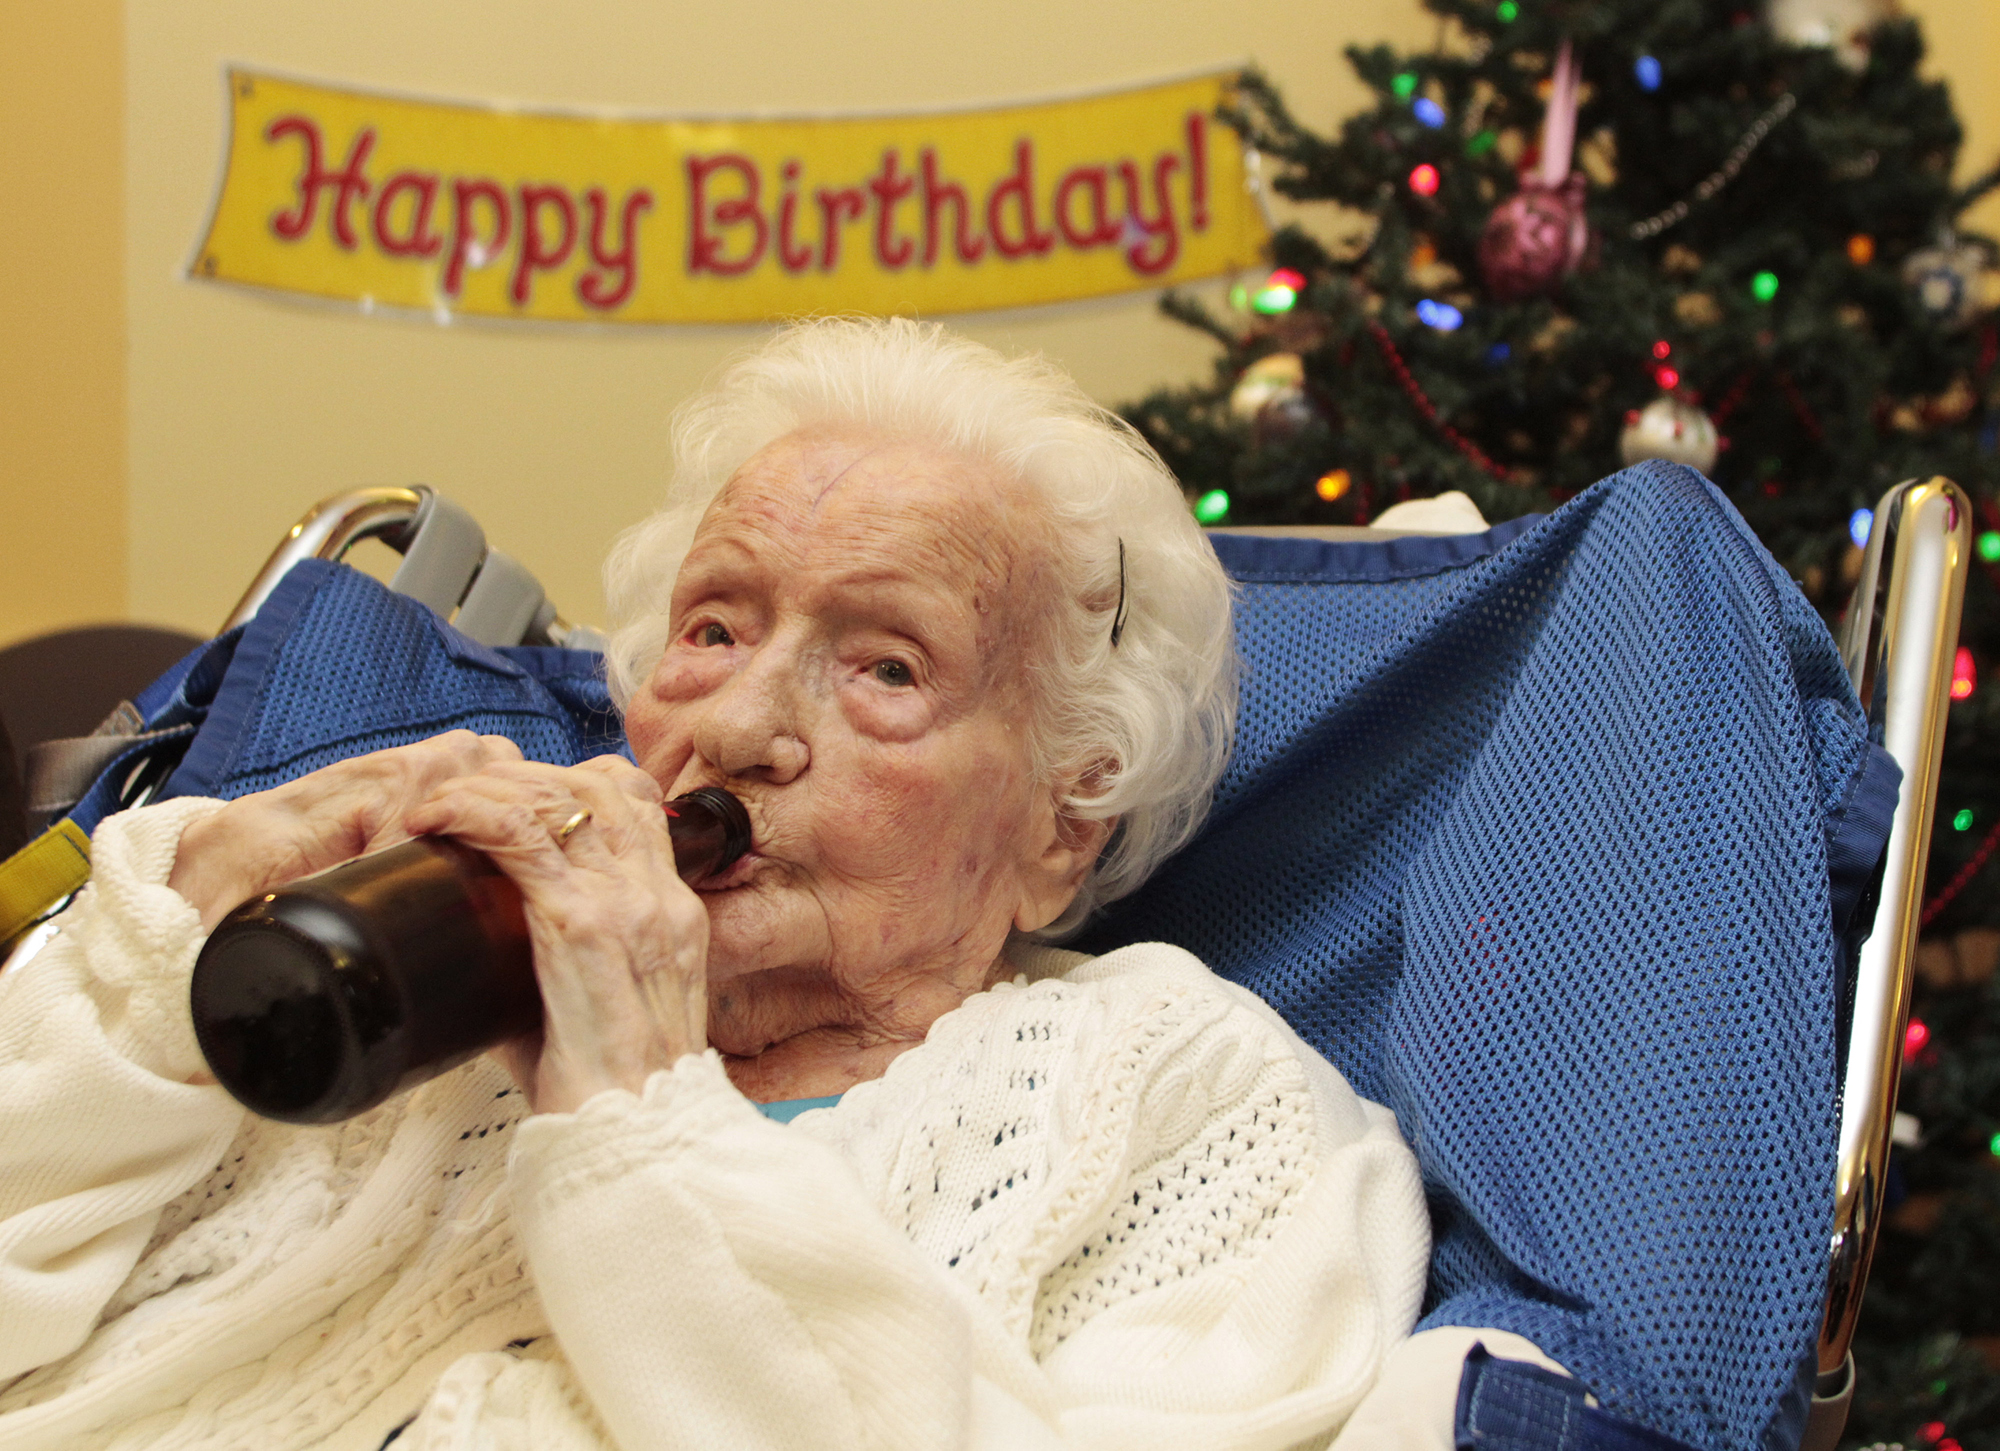 Merle Barwis, photographed at 111 years old, enjoys a birthday beer with family in Victoria, B.C. December 23, 2011. She is now 113.